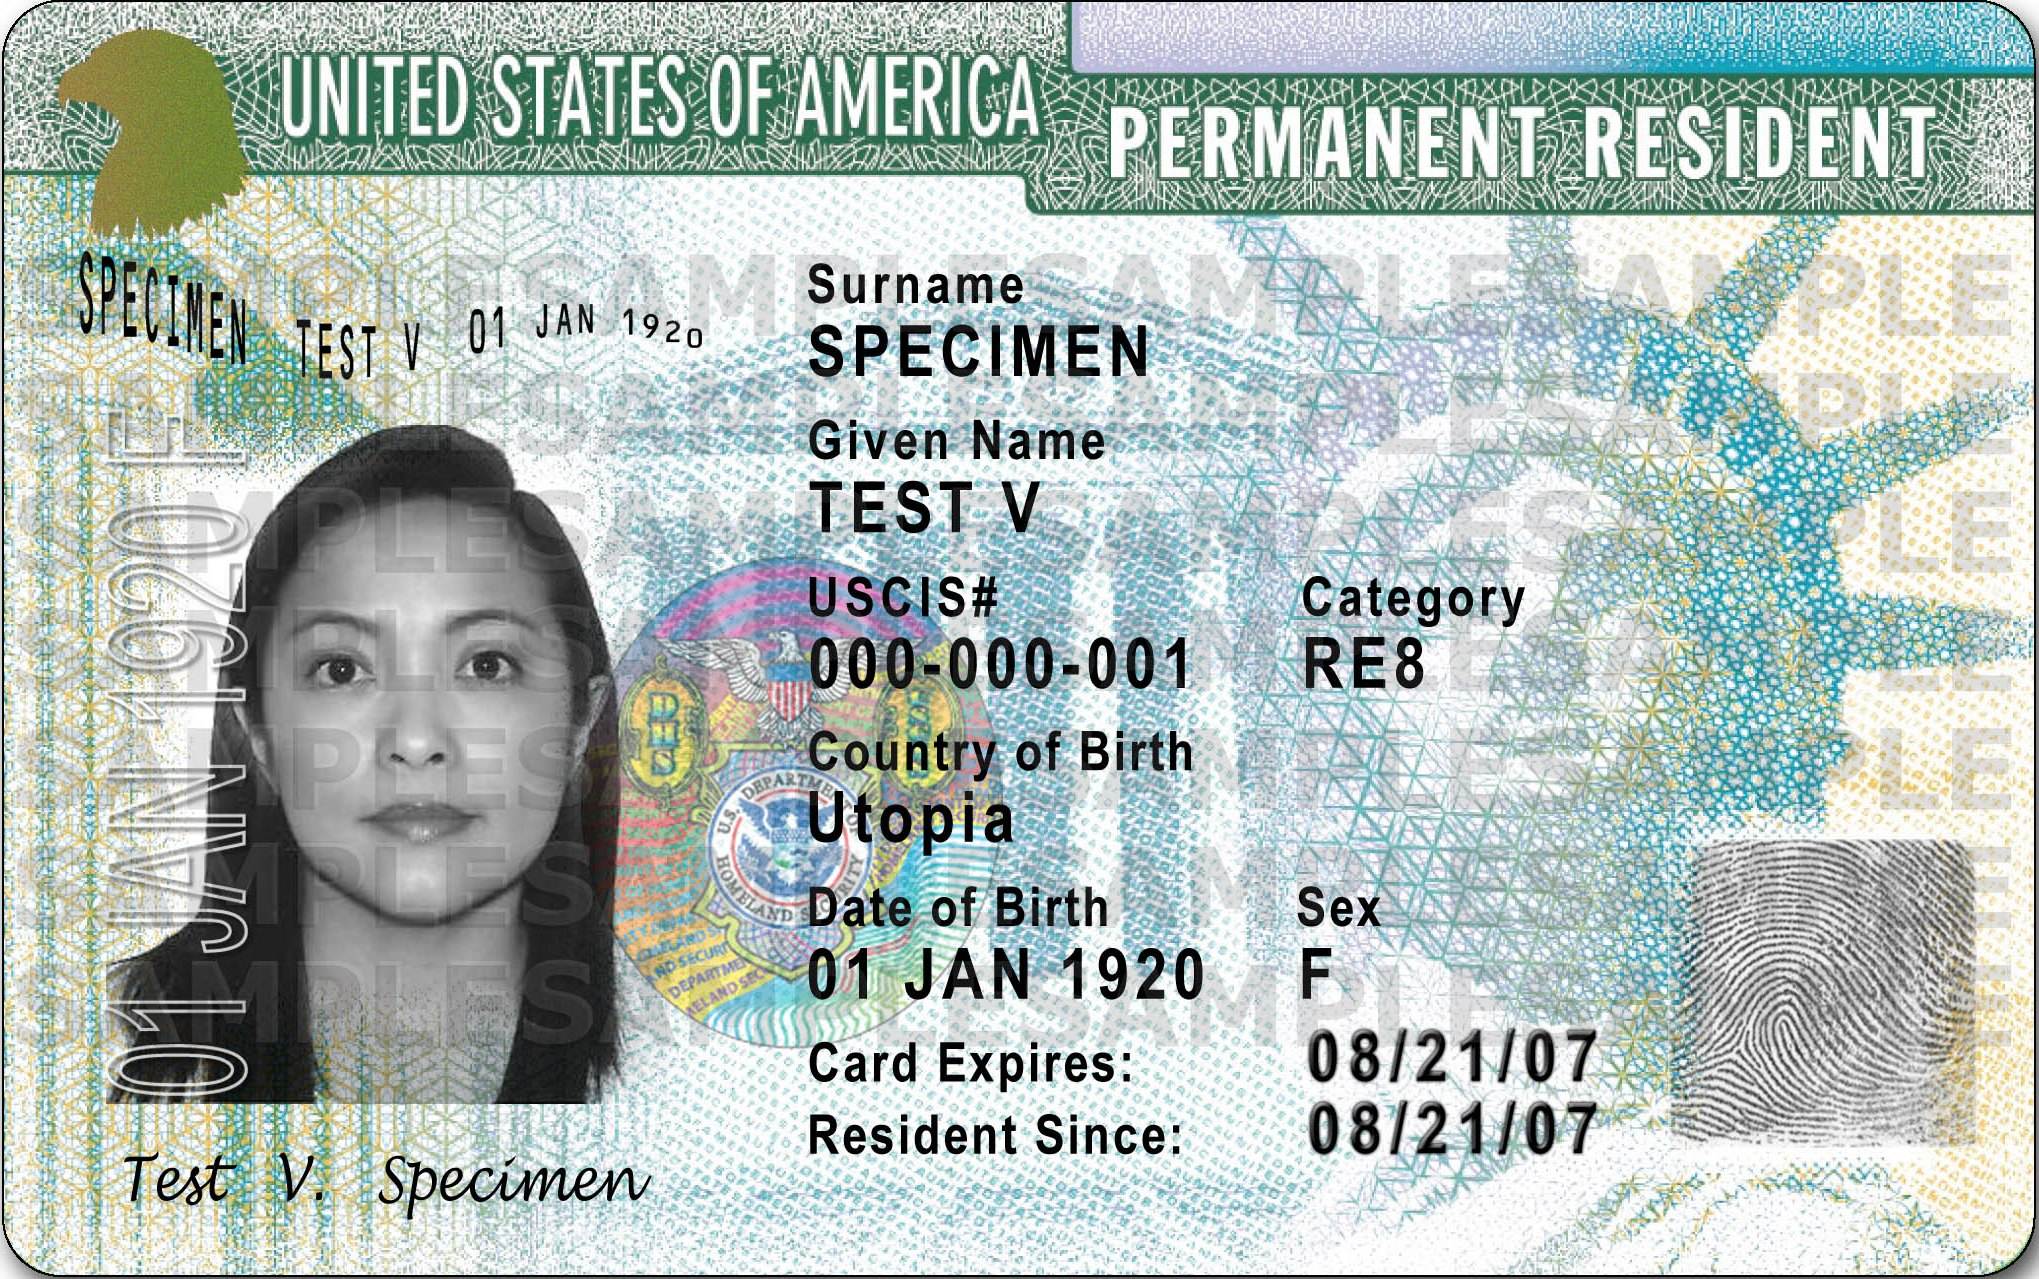 A sample of a U.S. permanent resident card.